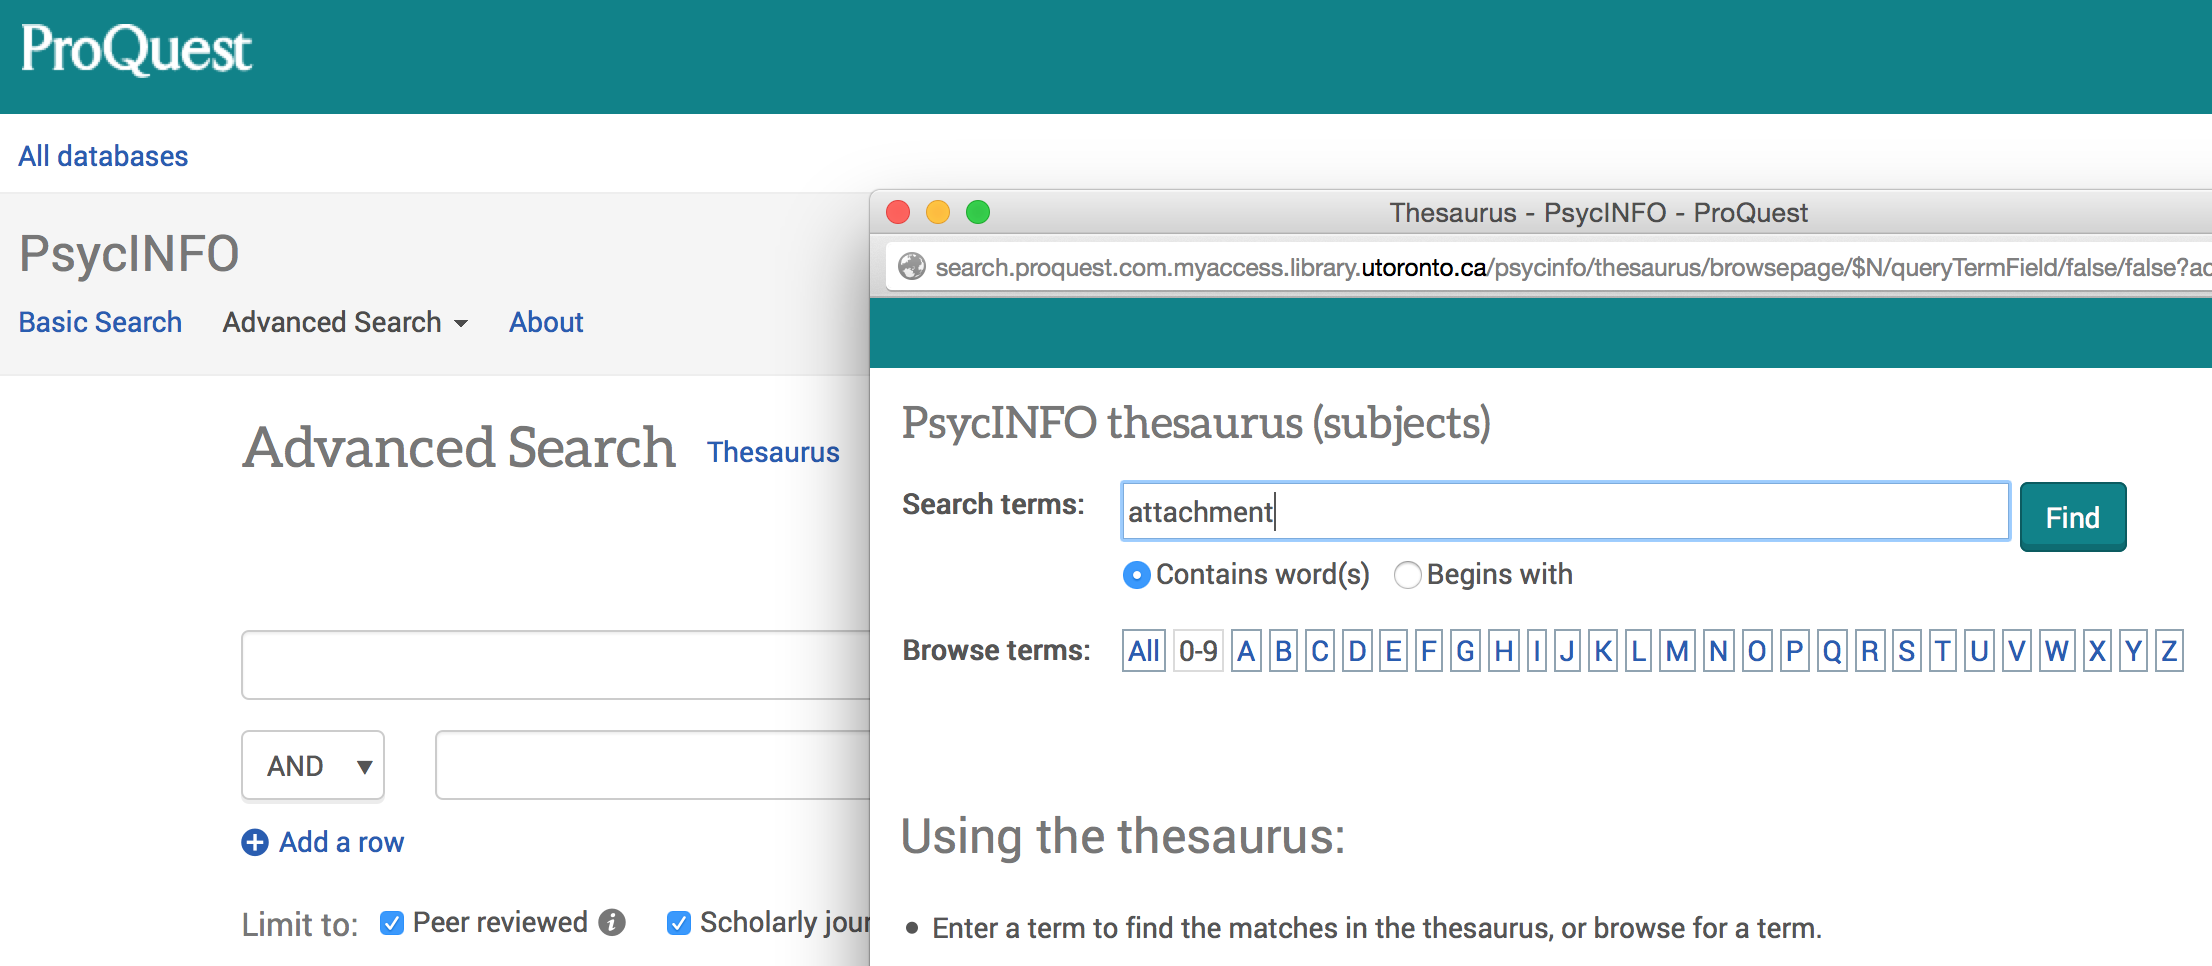 Where can i find empirical research documents online for psycholoy?